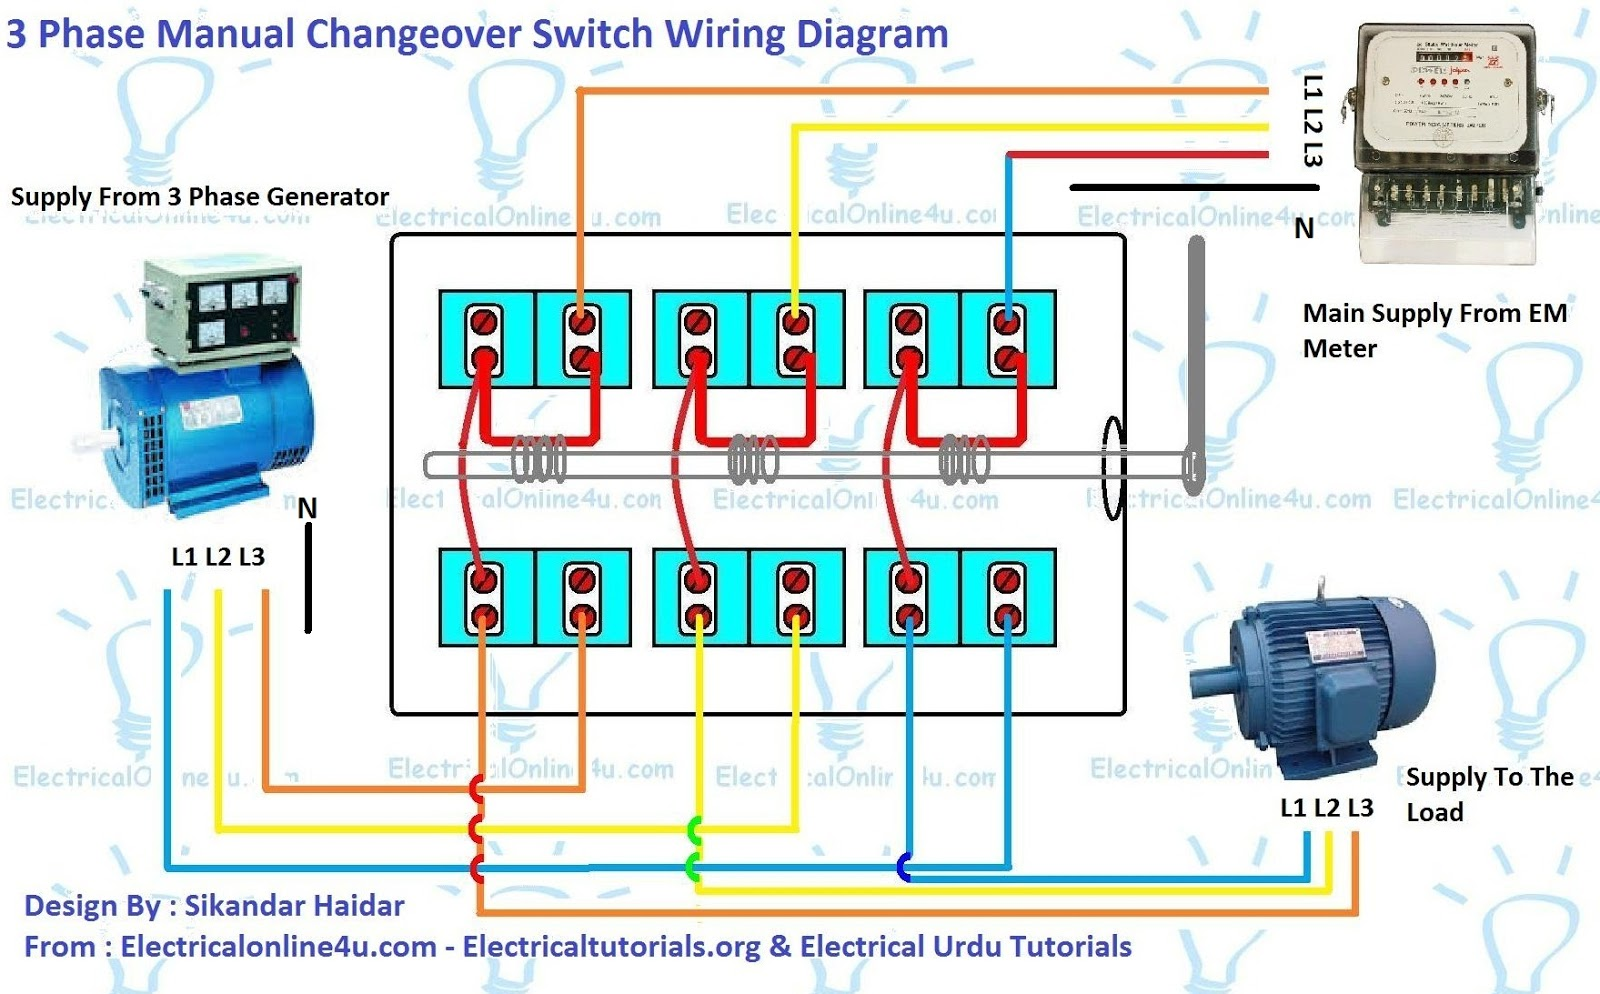 medium resolution of 3 phase manual changeover switch wiring diagram for 480 volt 3 phase wiring 3 phase contactor wiring schematic